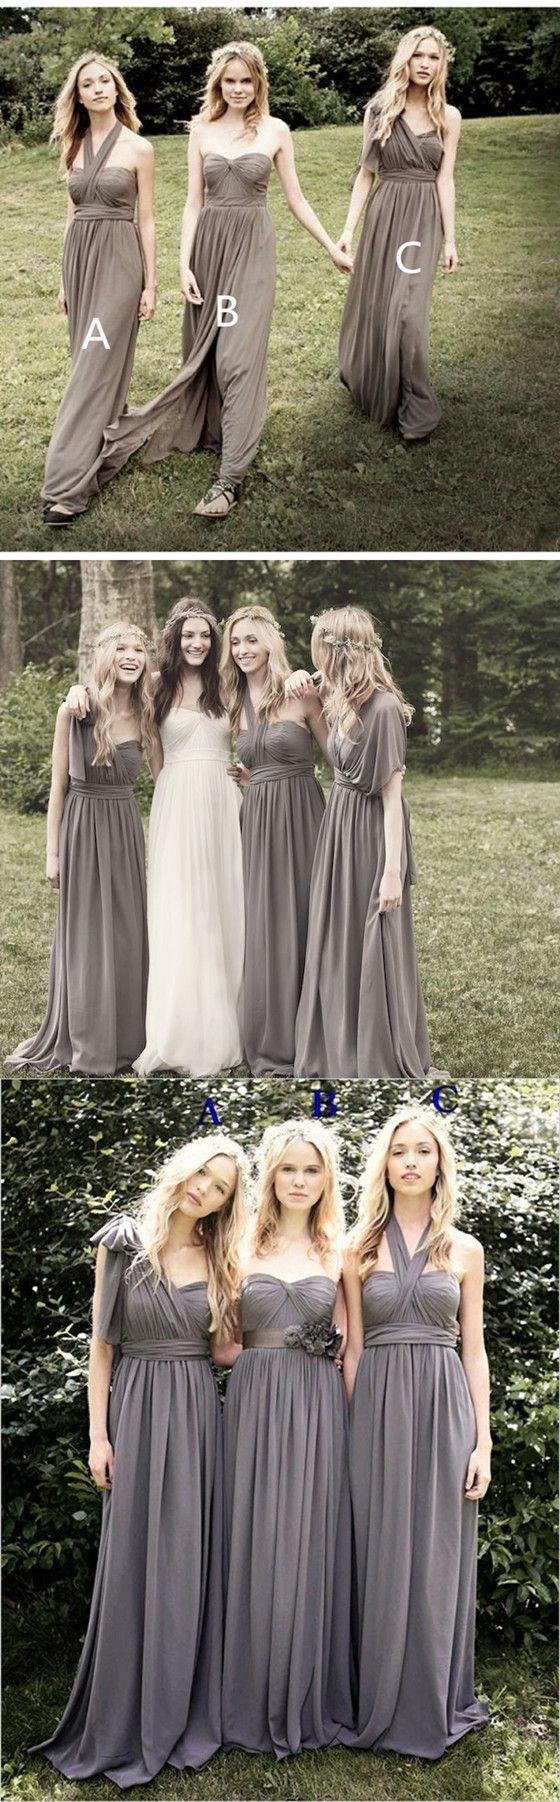 Best 25 grey bridesmaid dresses ideas on pinterest grey grey floor length breast wrapped beach style country style chiffon bridesmaid dresses bd0420 ombrellifo Choice Image